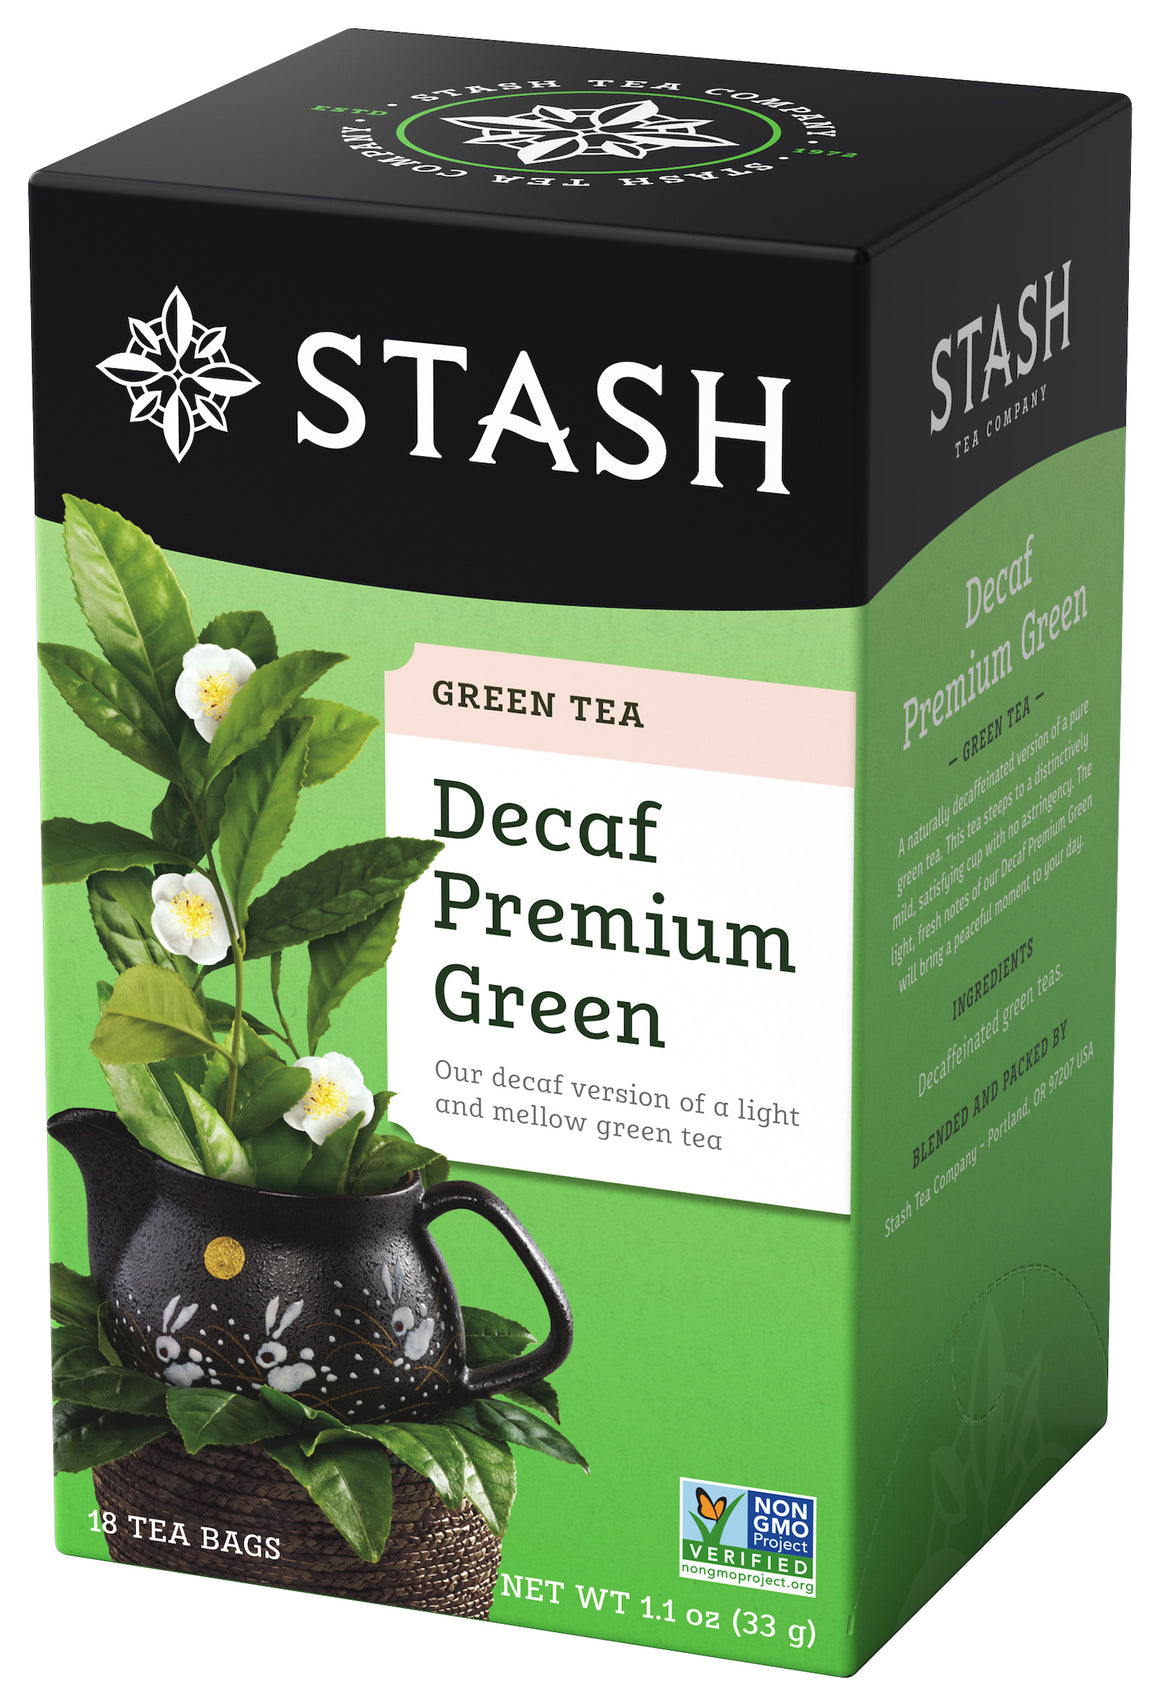 Decaf Premium Green